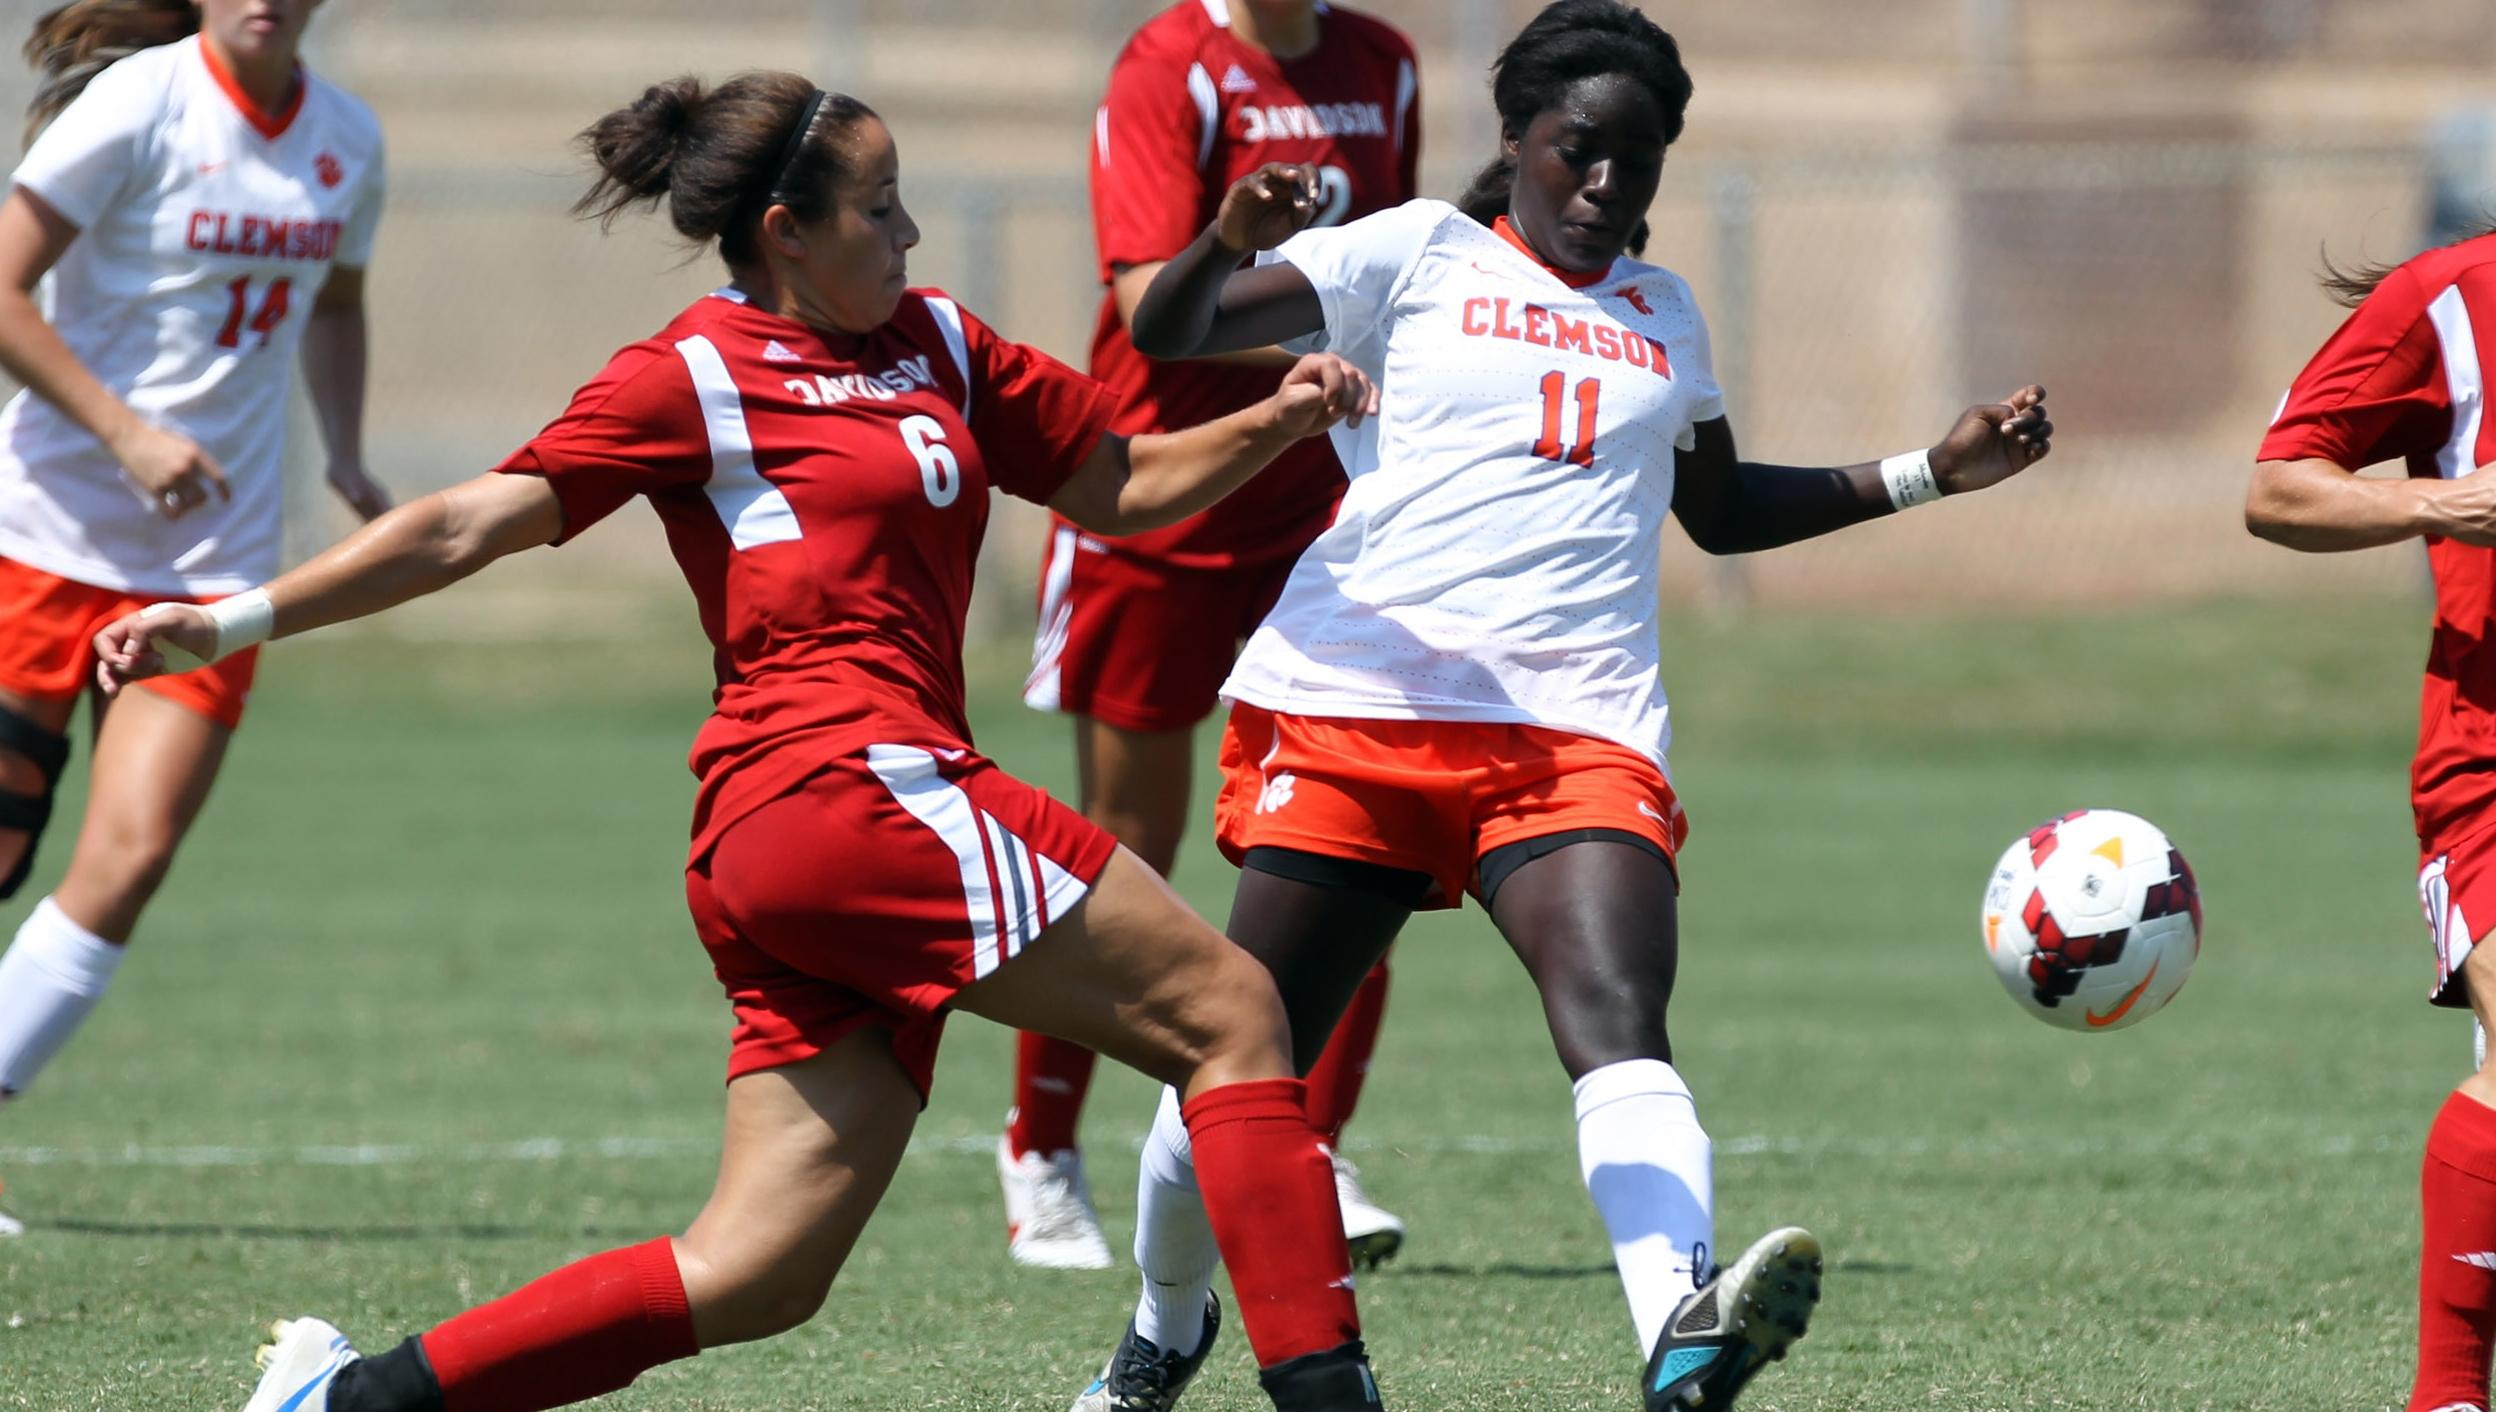 Atanda's Two Goals Propel Clemson to Victory over Davidson Sunday